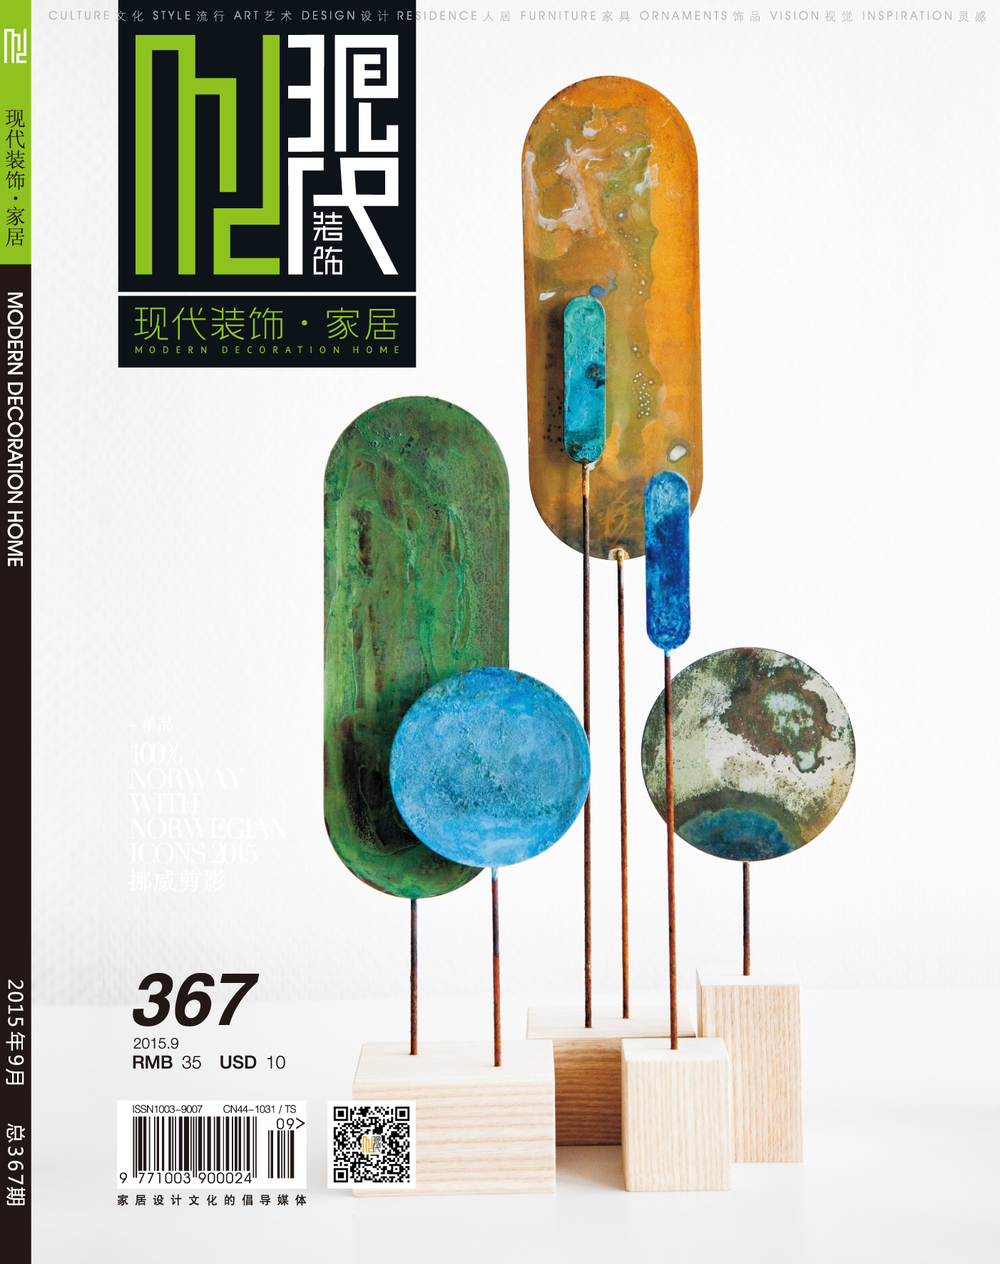 Modern Decoration Sept 2015 front cover.jpg